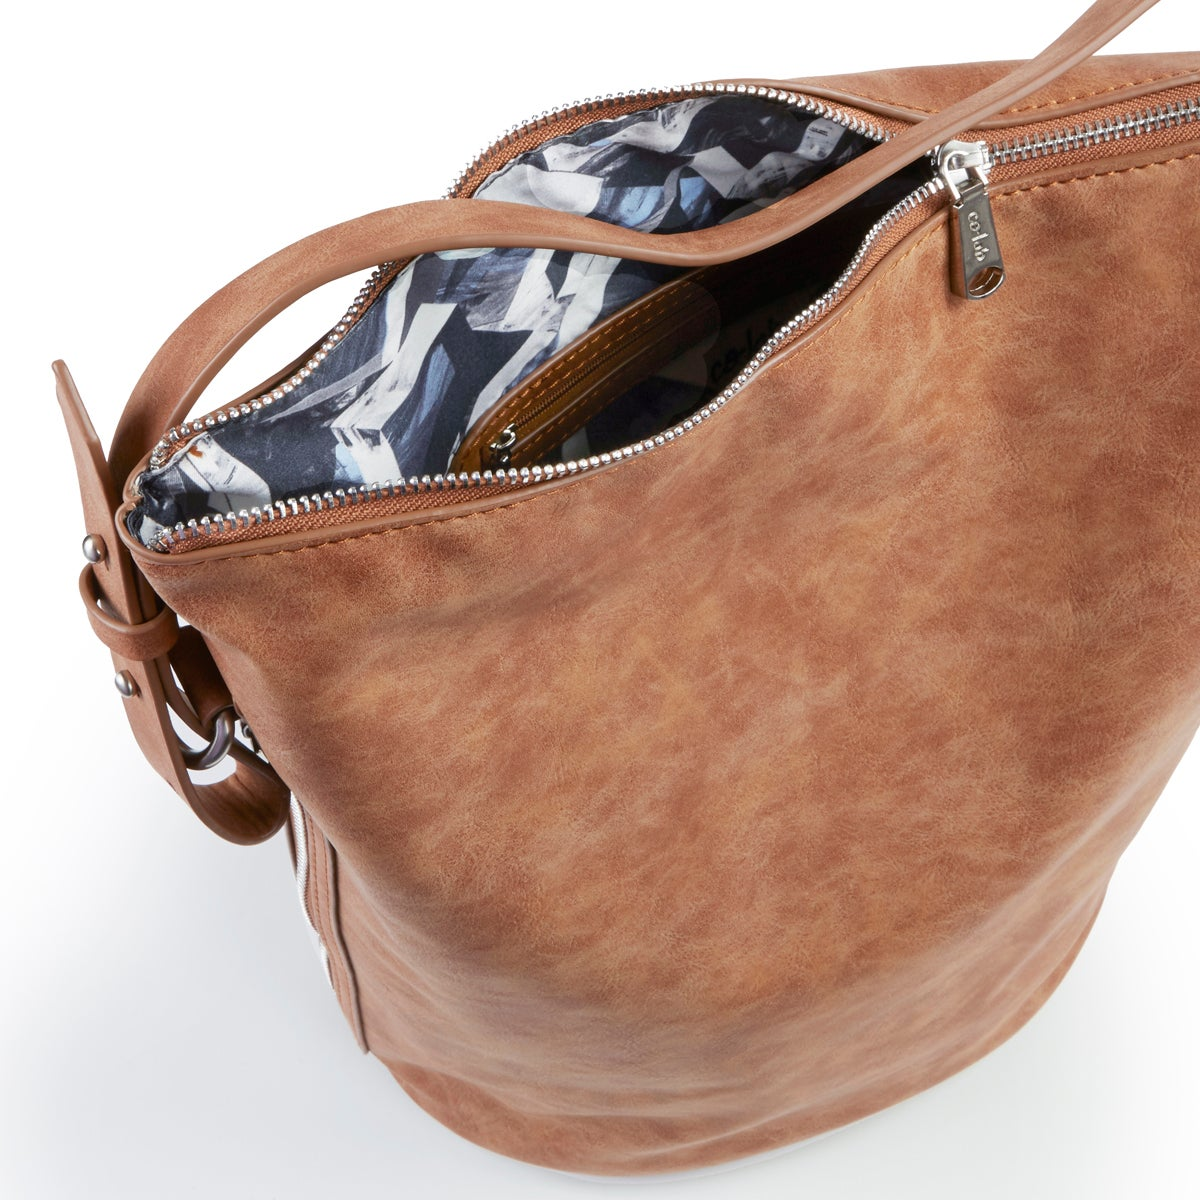 Lds 4984 cognac bucket hobo bag